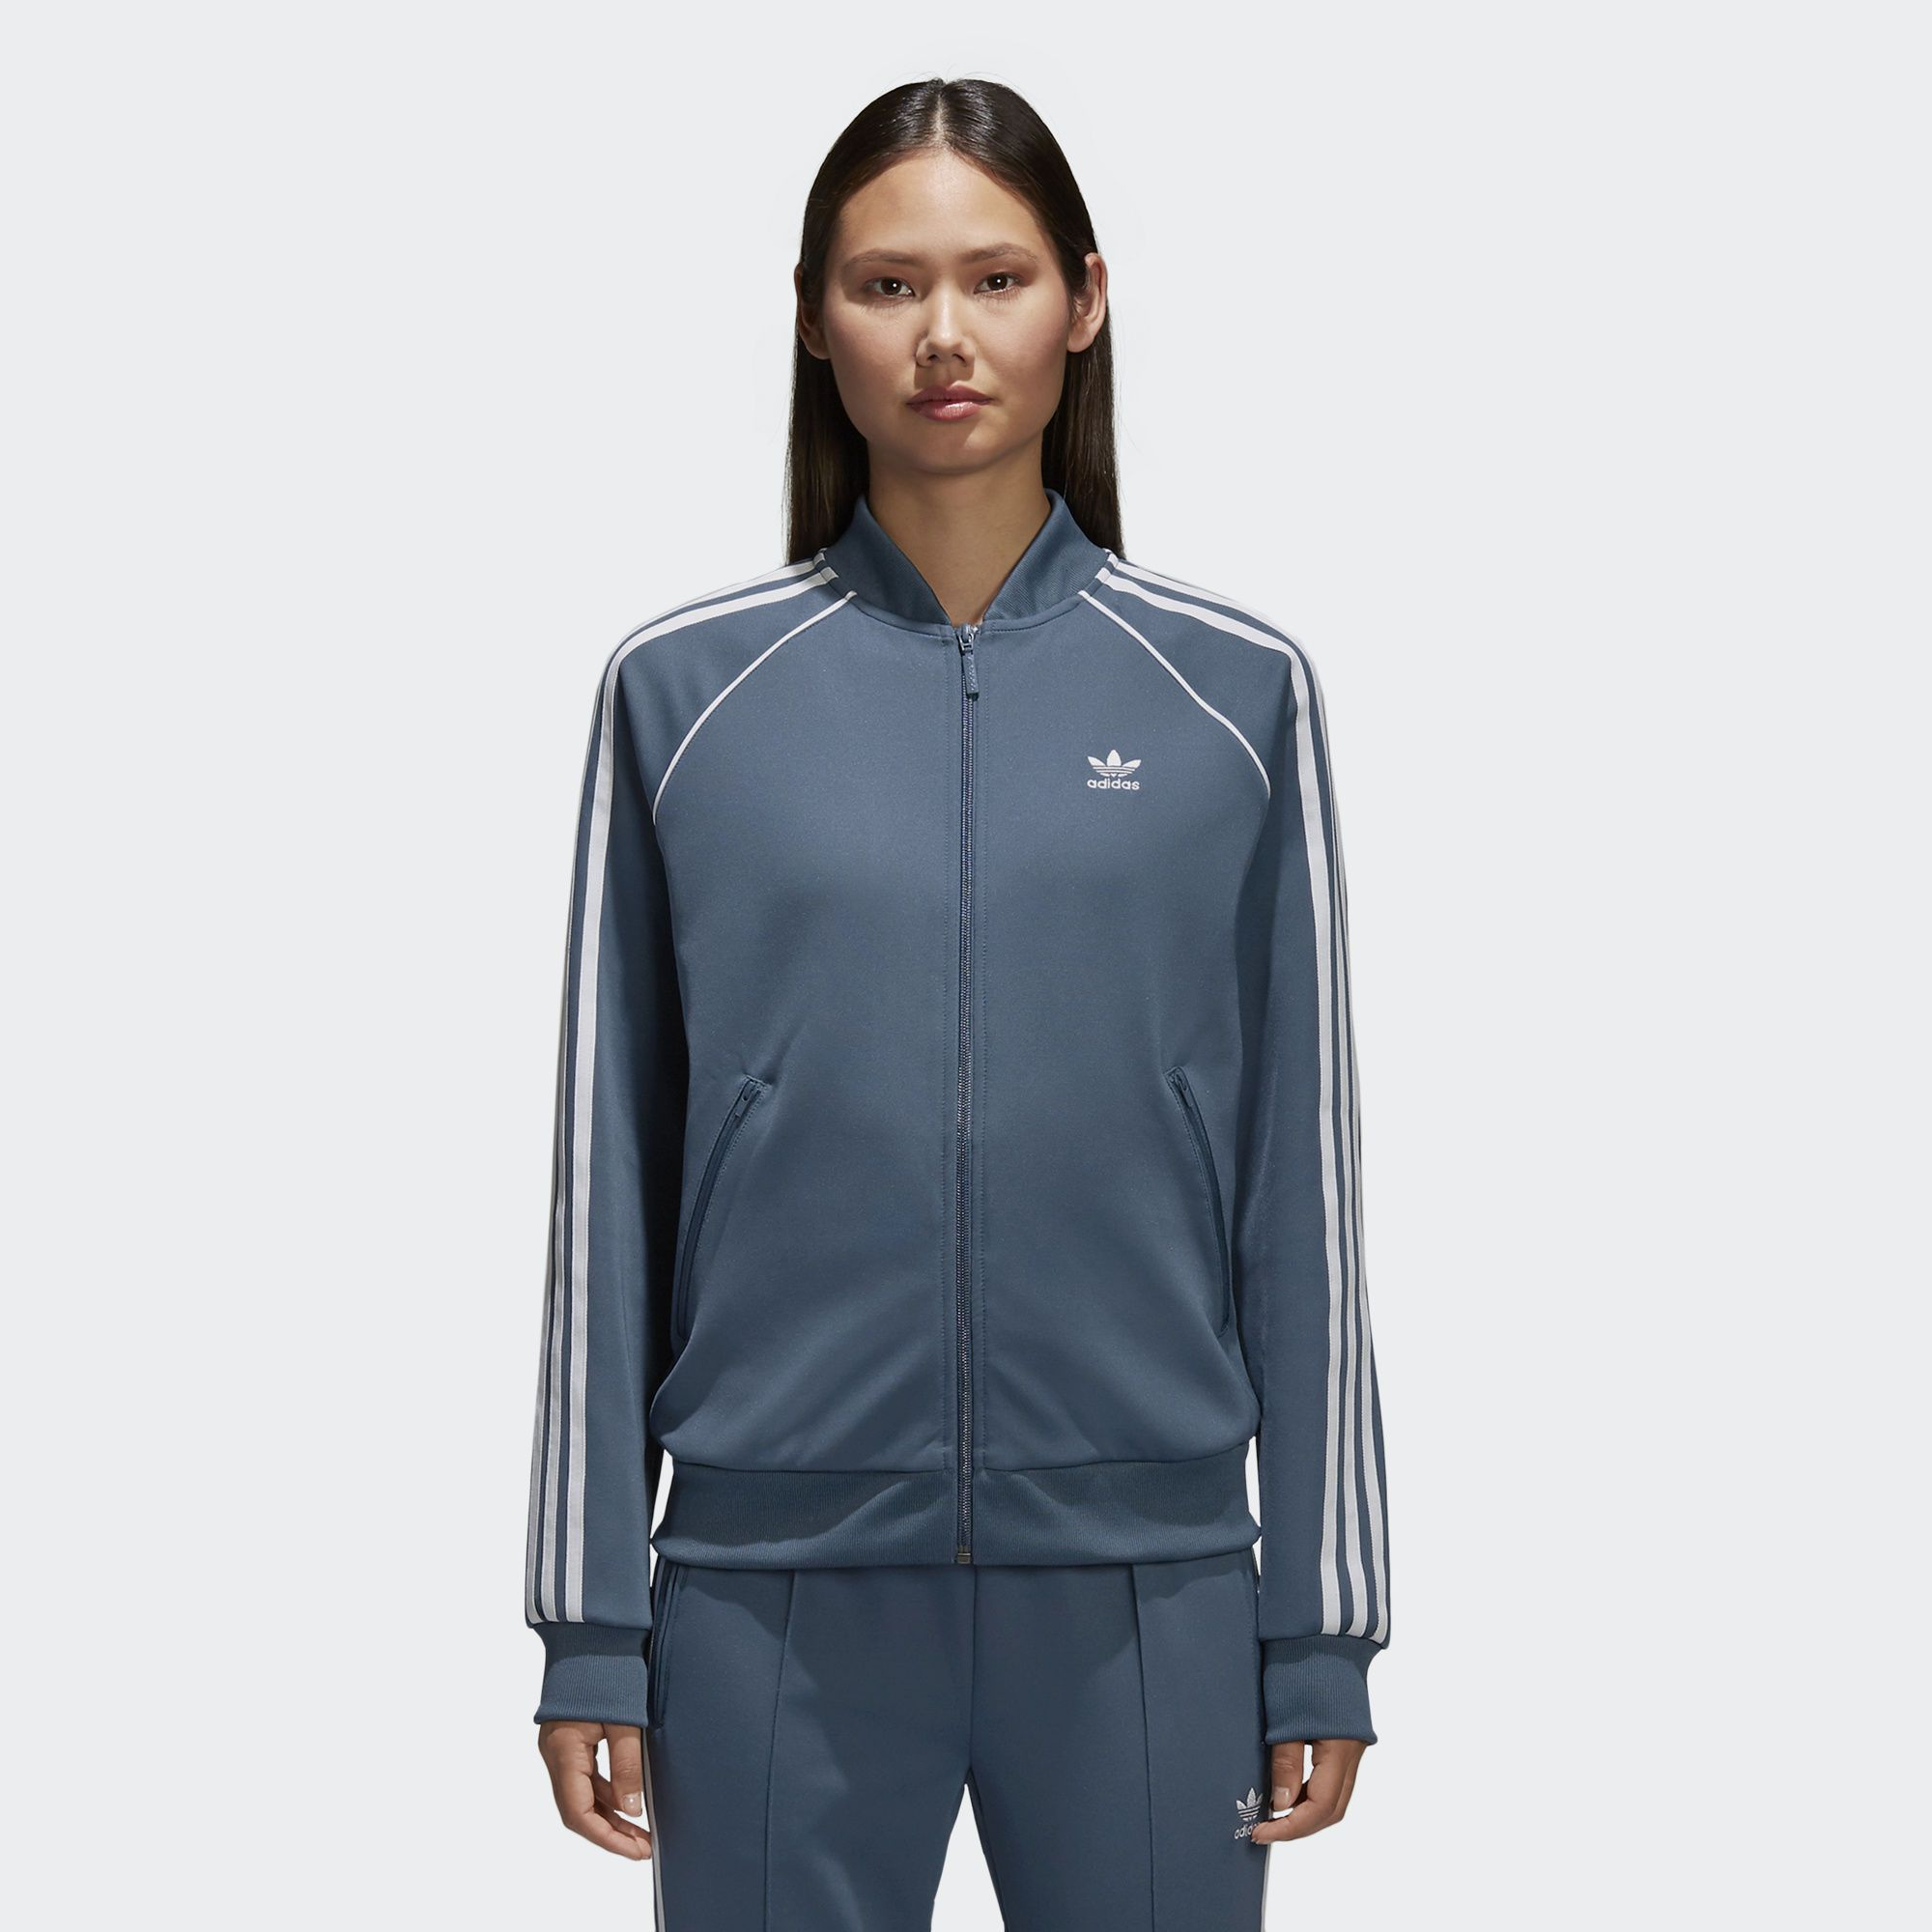 adidas Women's Adidas Originals X Danielle Cathari Cropped Denim Jacket from NORDSTROM | ShapeShop